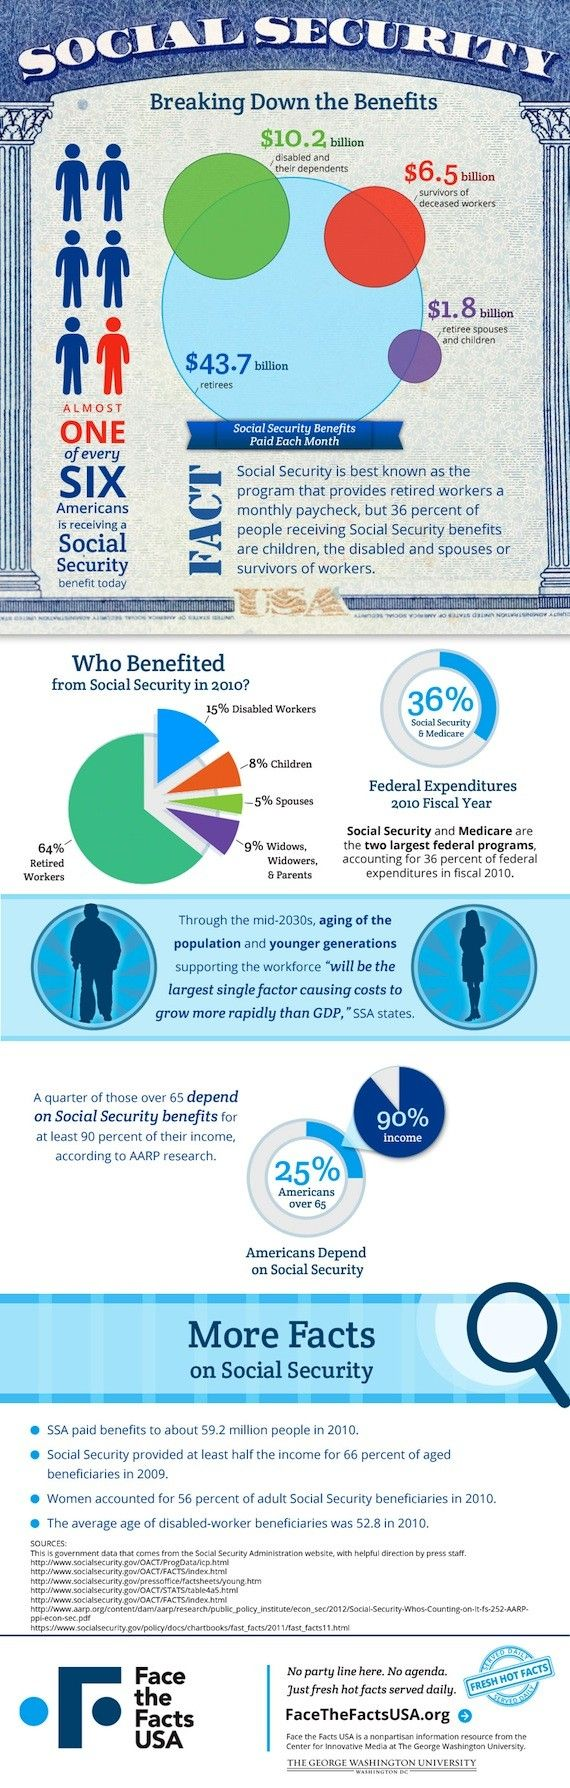 social security benefits for widows over 65